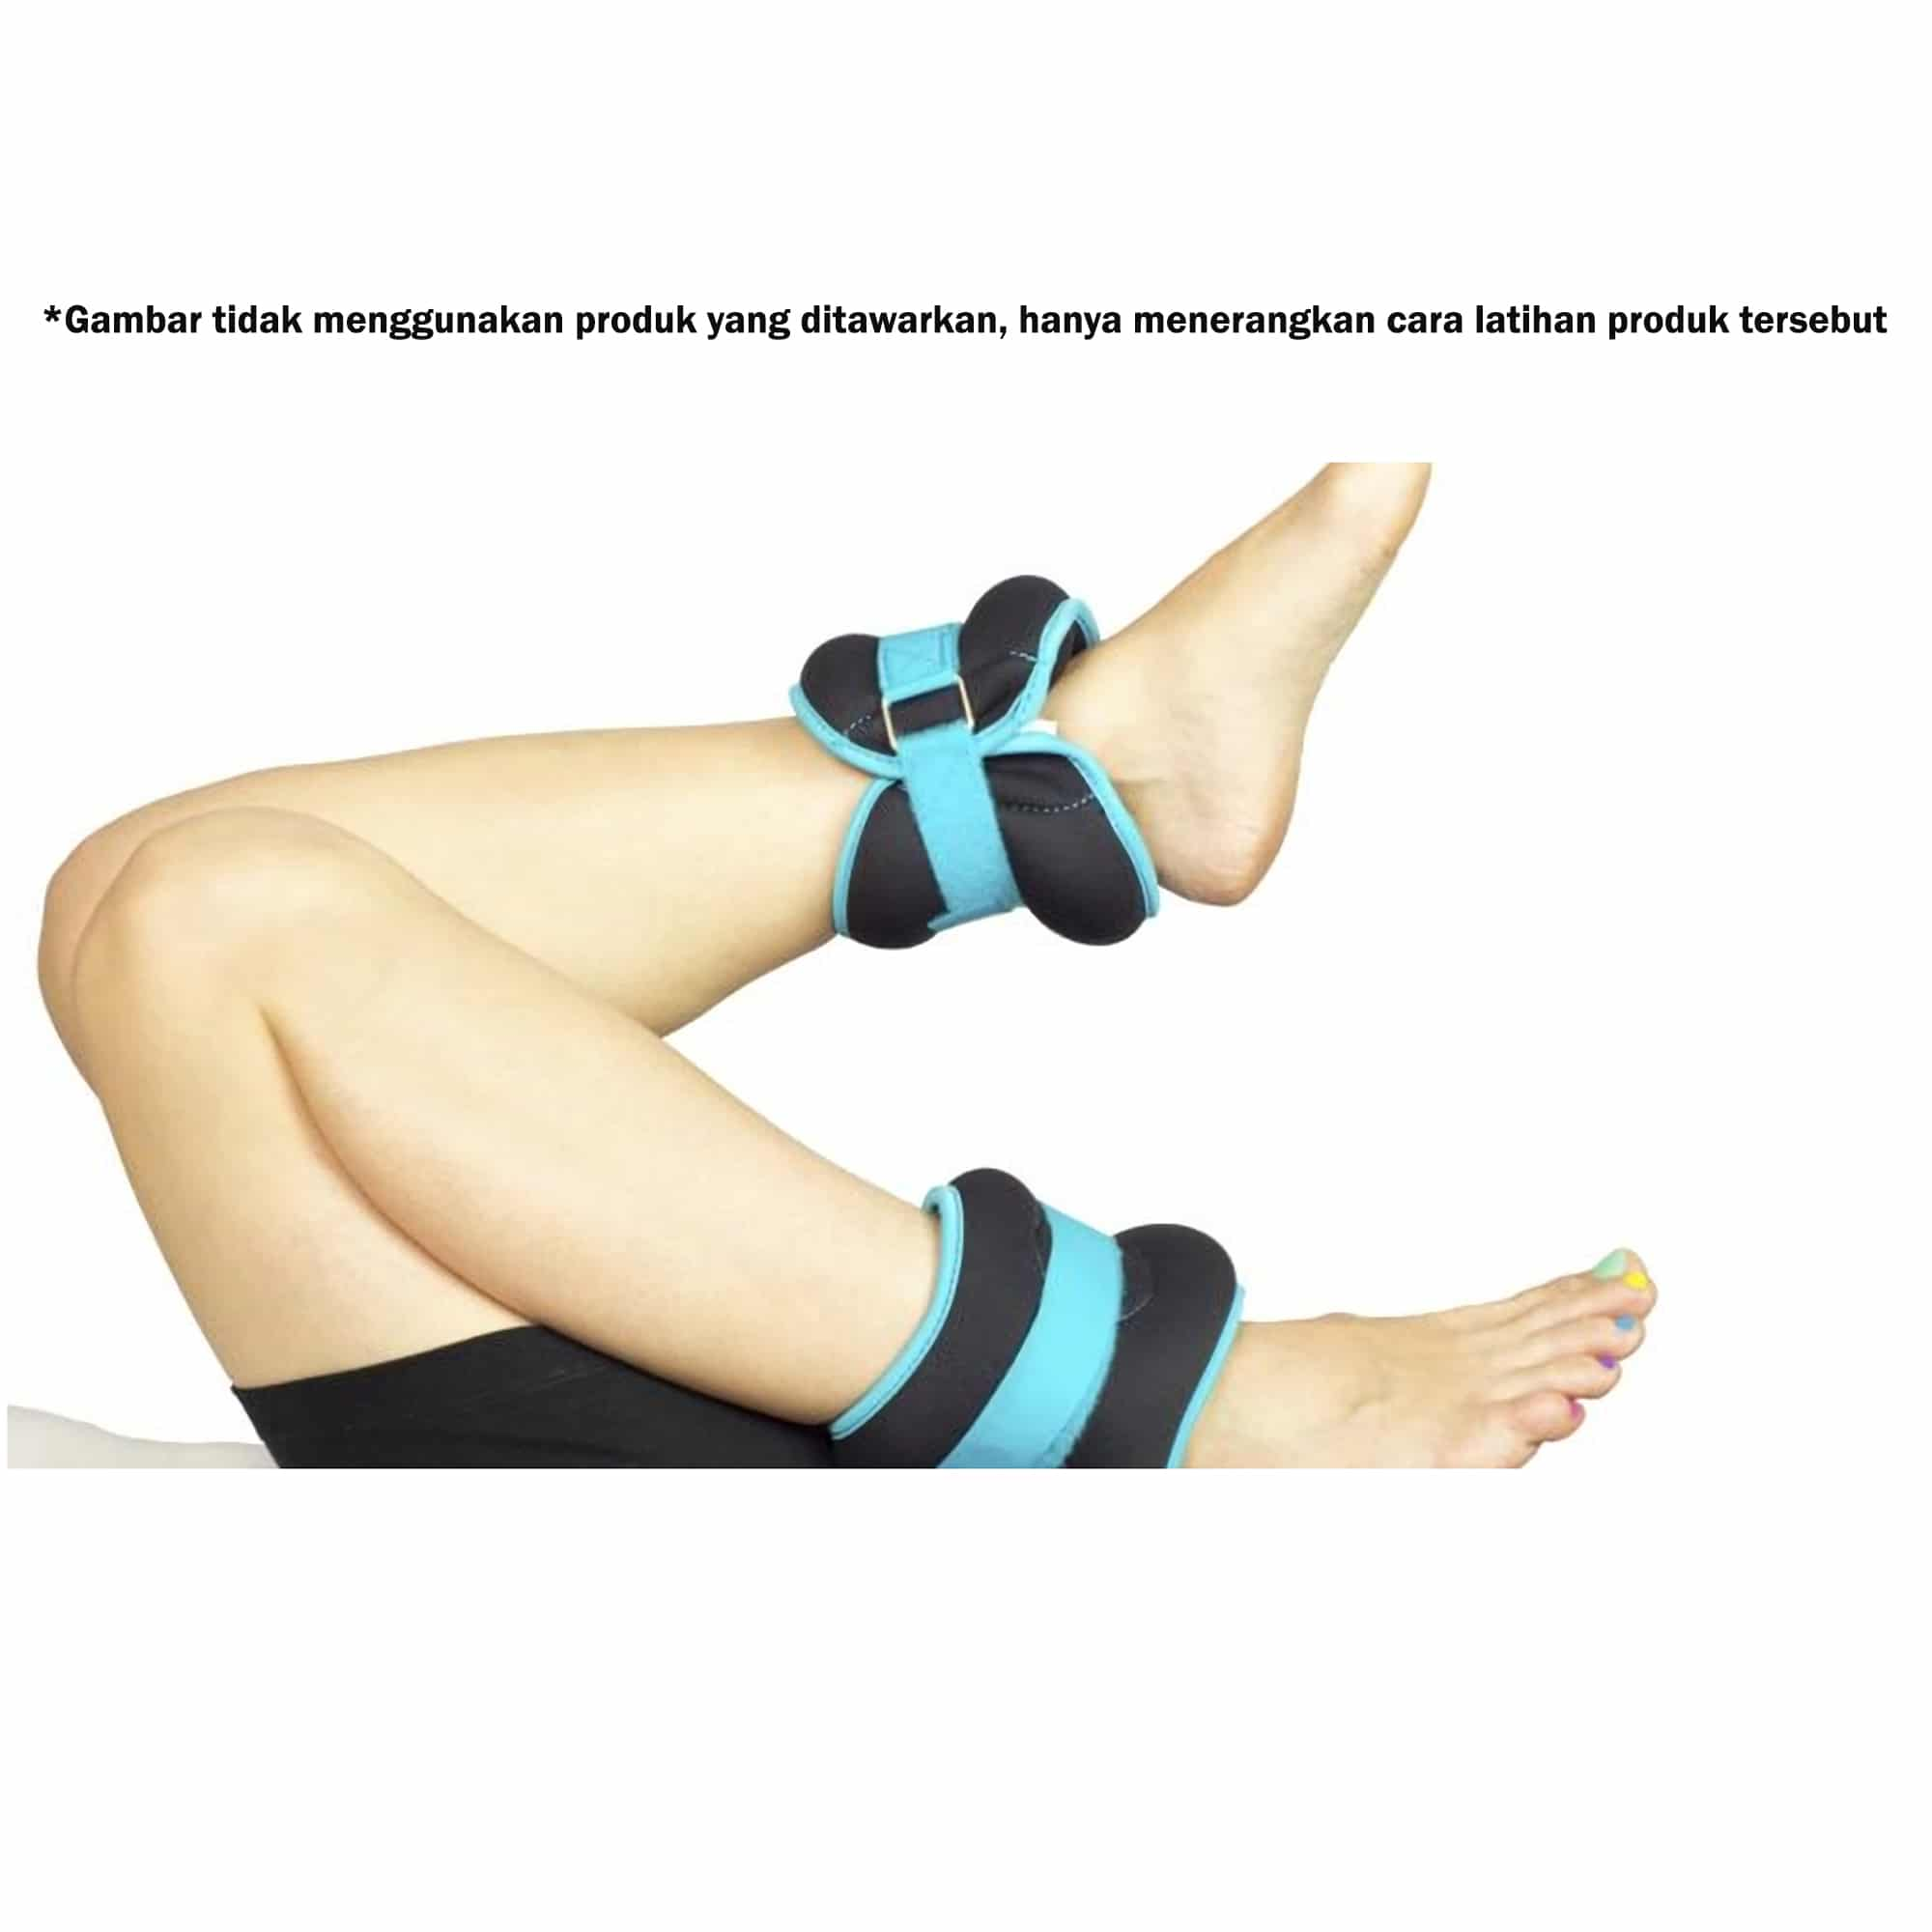 exsercise wtm 5 - Ankle Weight/Foot Band 3kg Garis Biru Kettler - ASSAW26D